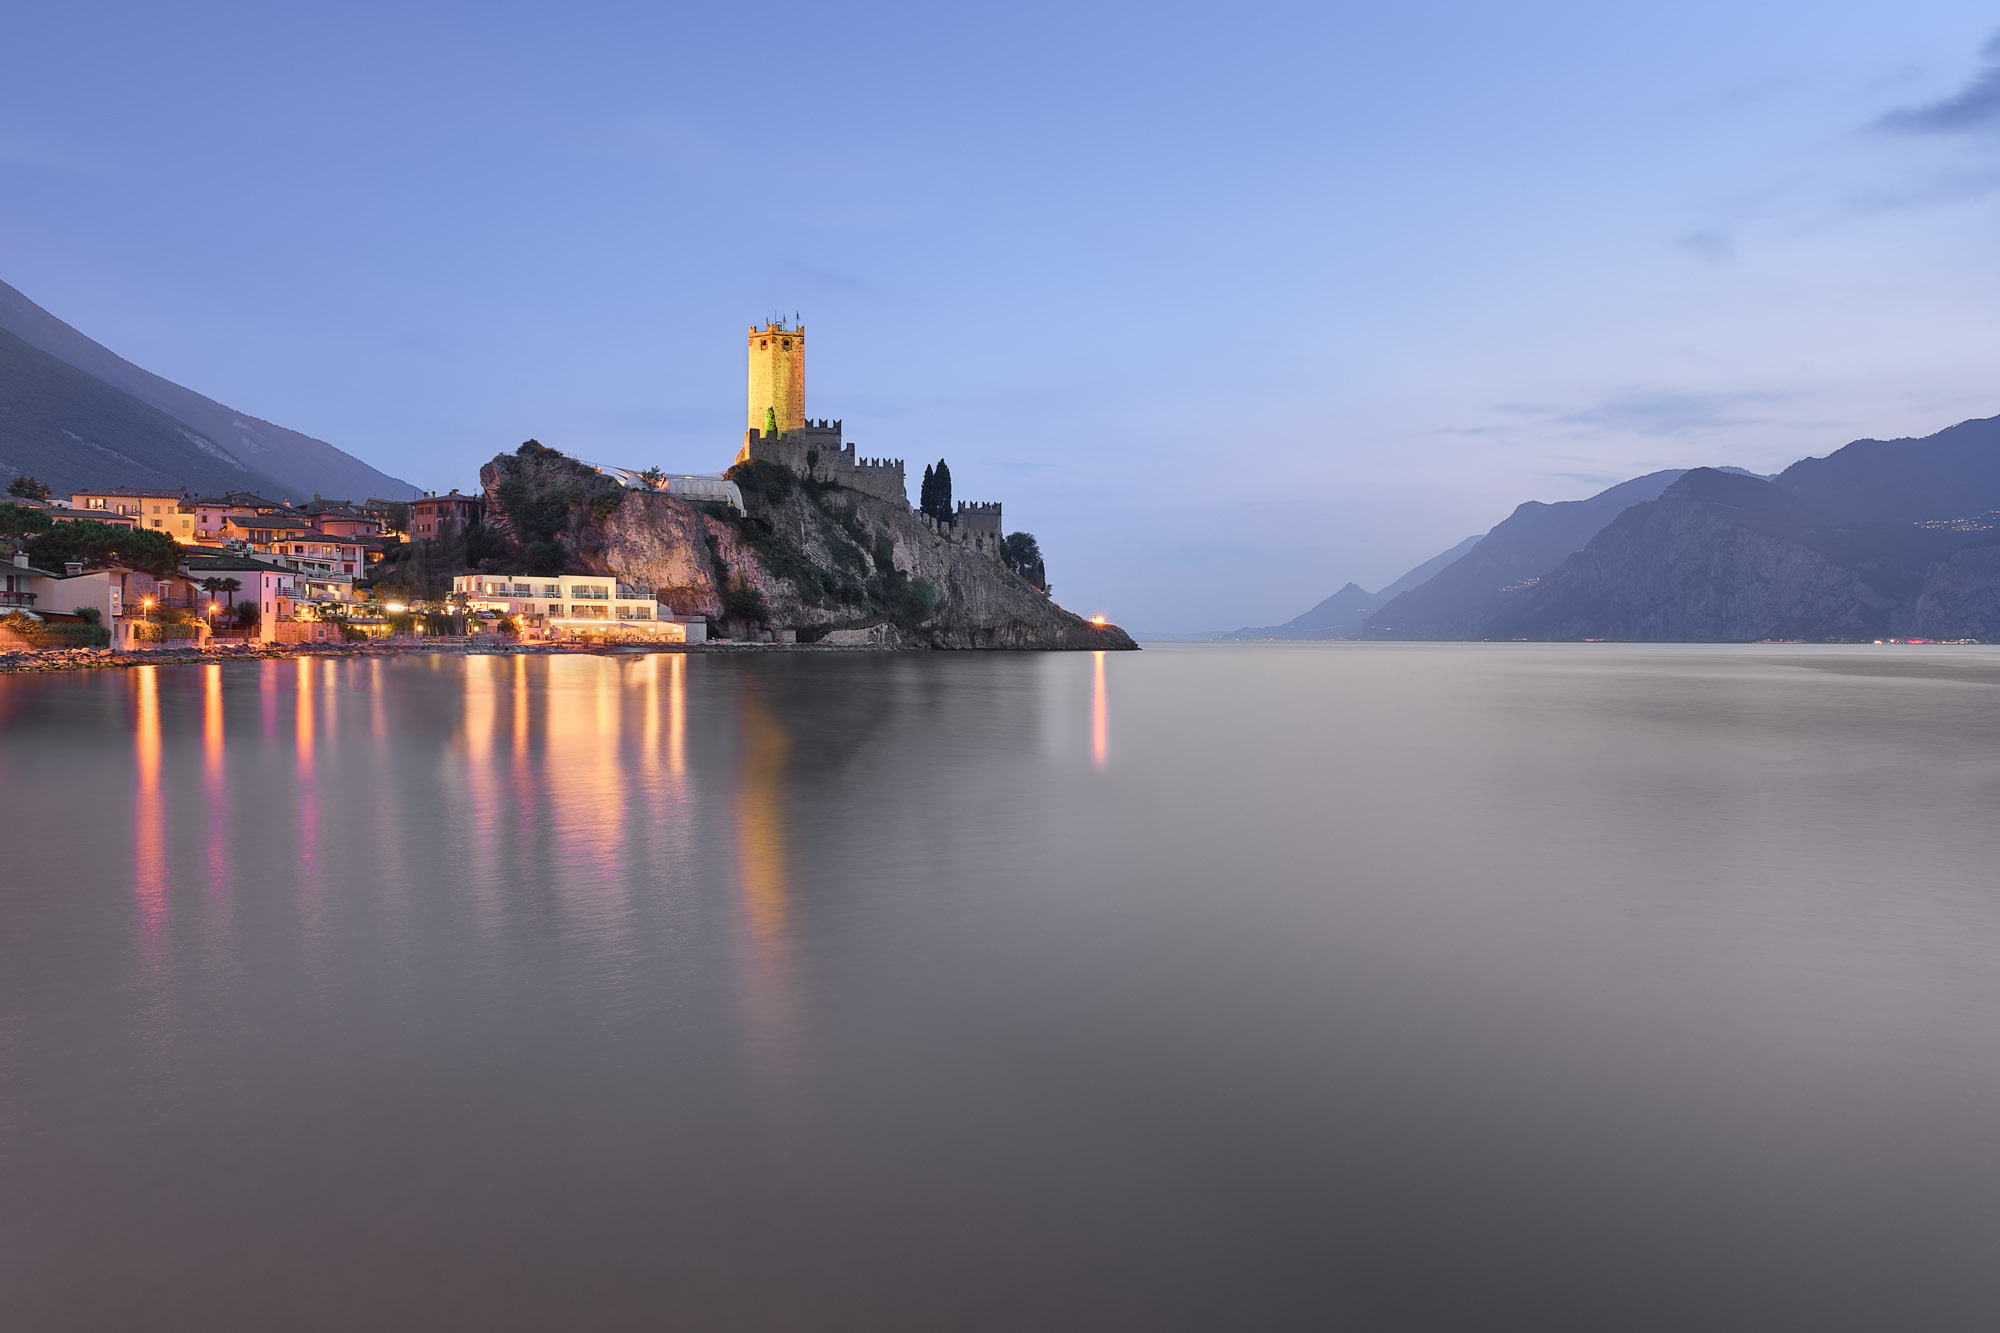 Lake Garda and Town of Malcesine, Italy